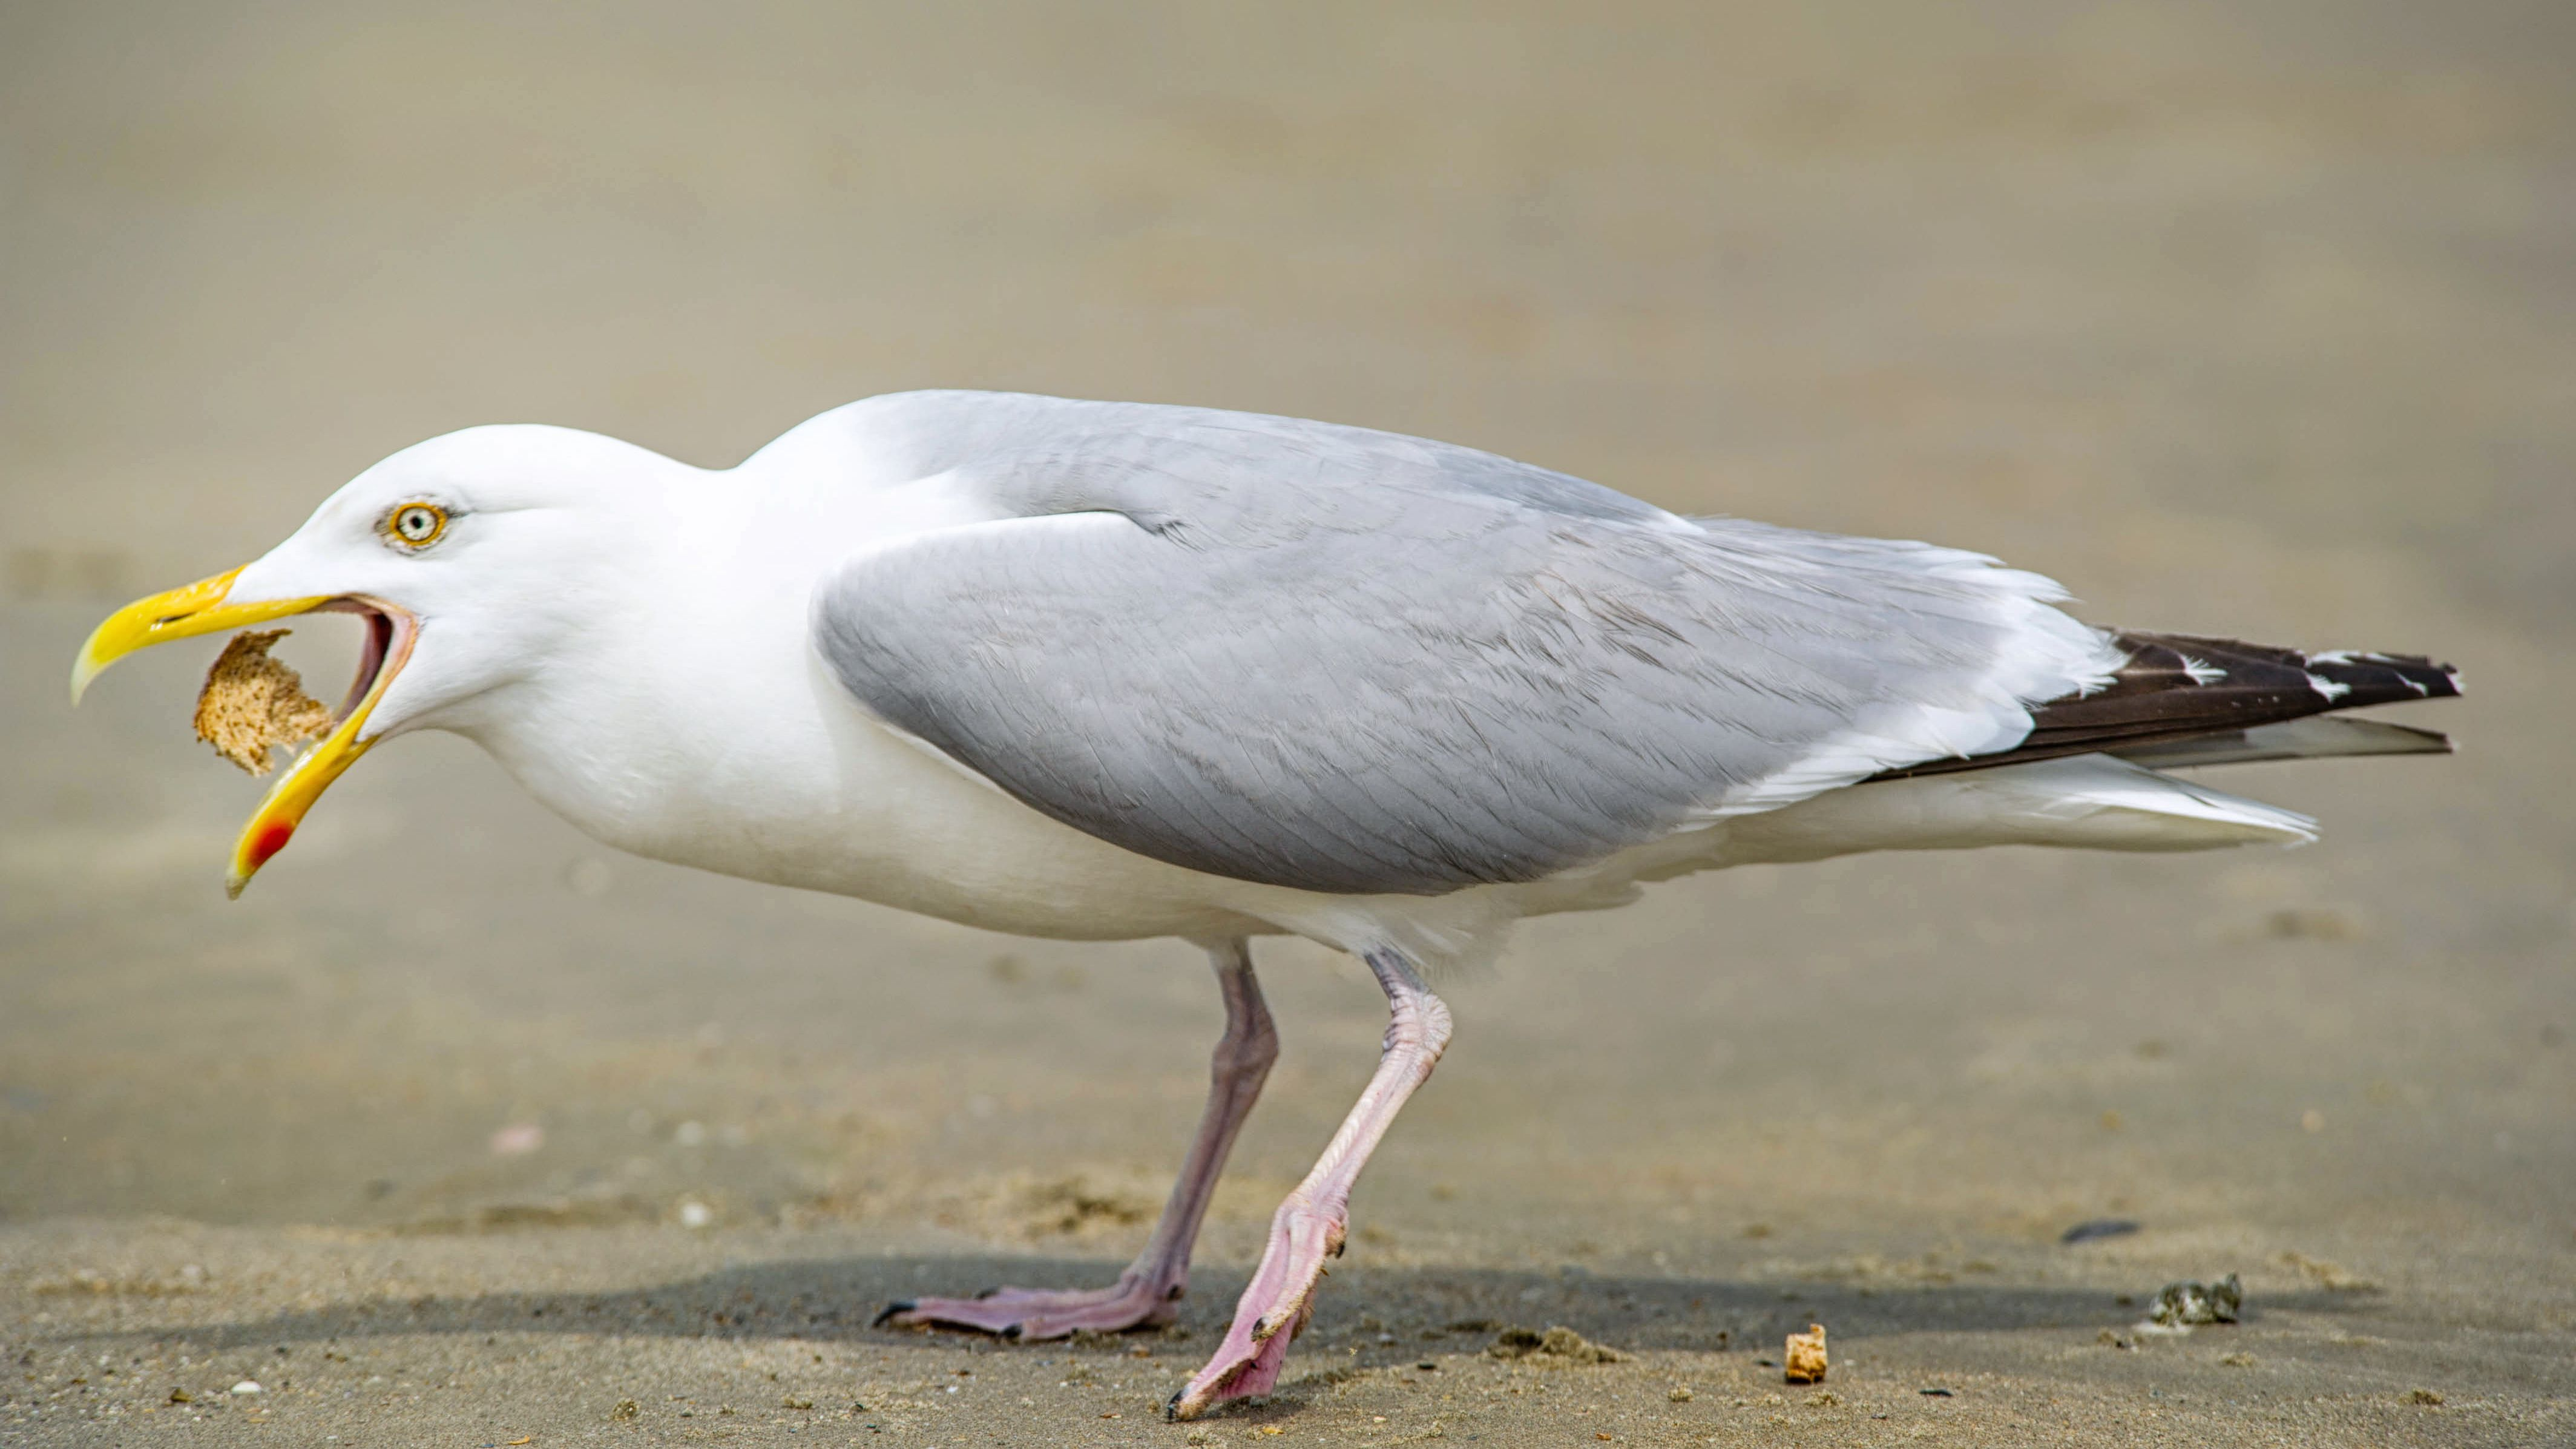 Seagulls Like Food Better if Humans Touch It First